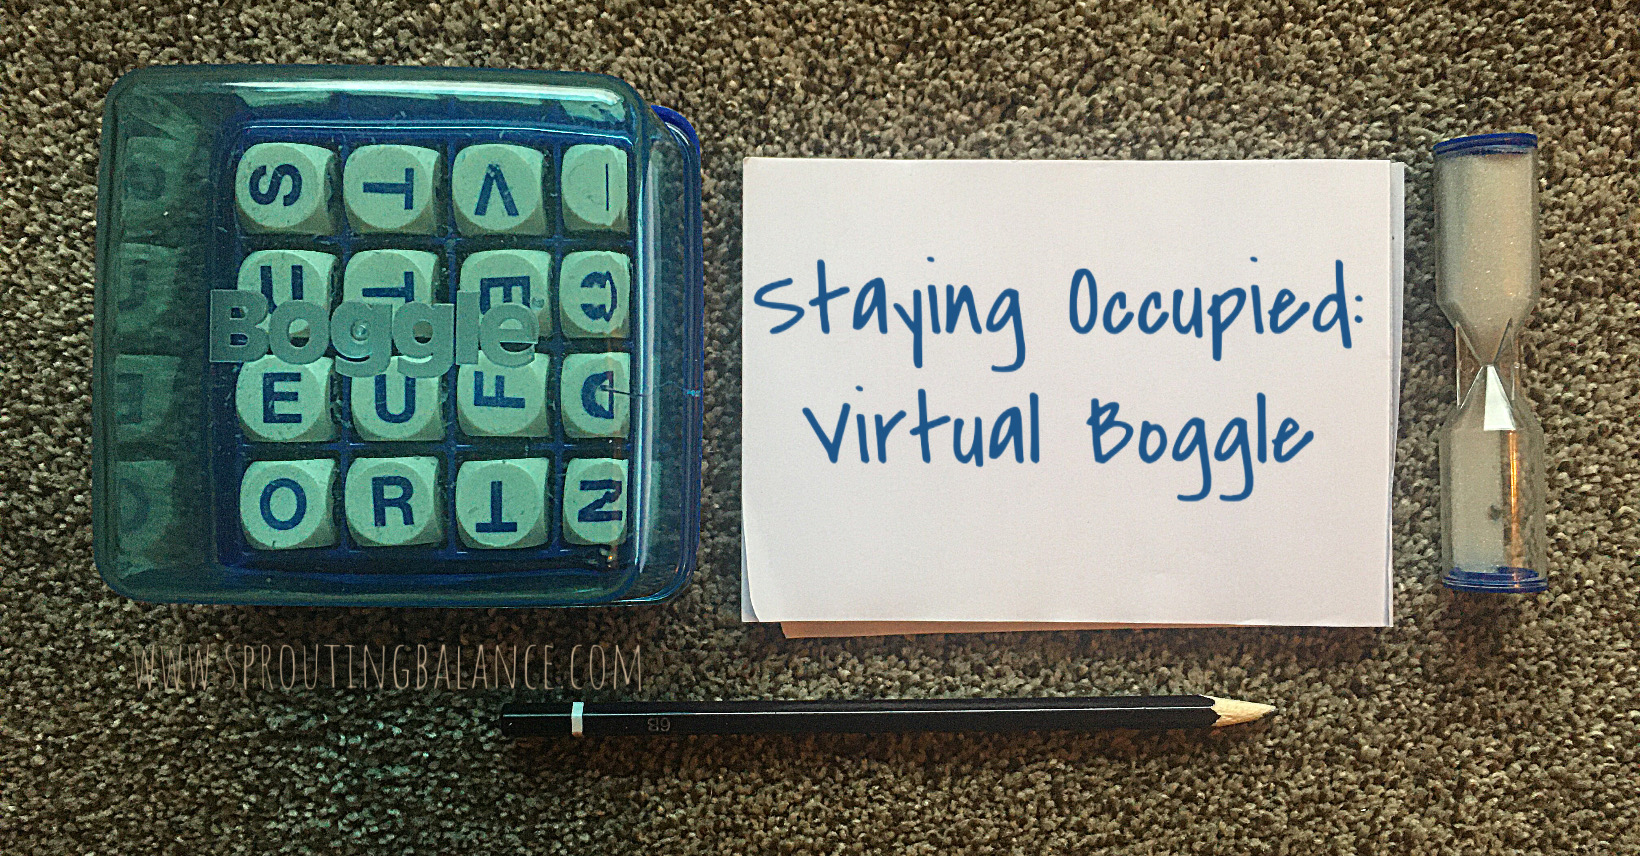 Staying Occupied: Virtual Boggle | www.sproutingbalance.com | #stayhome #socialdistancing #bepositive